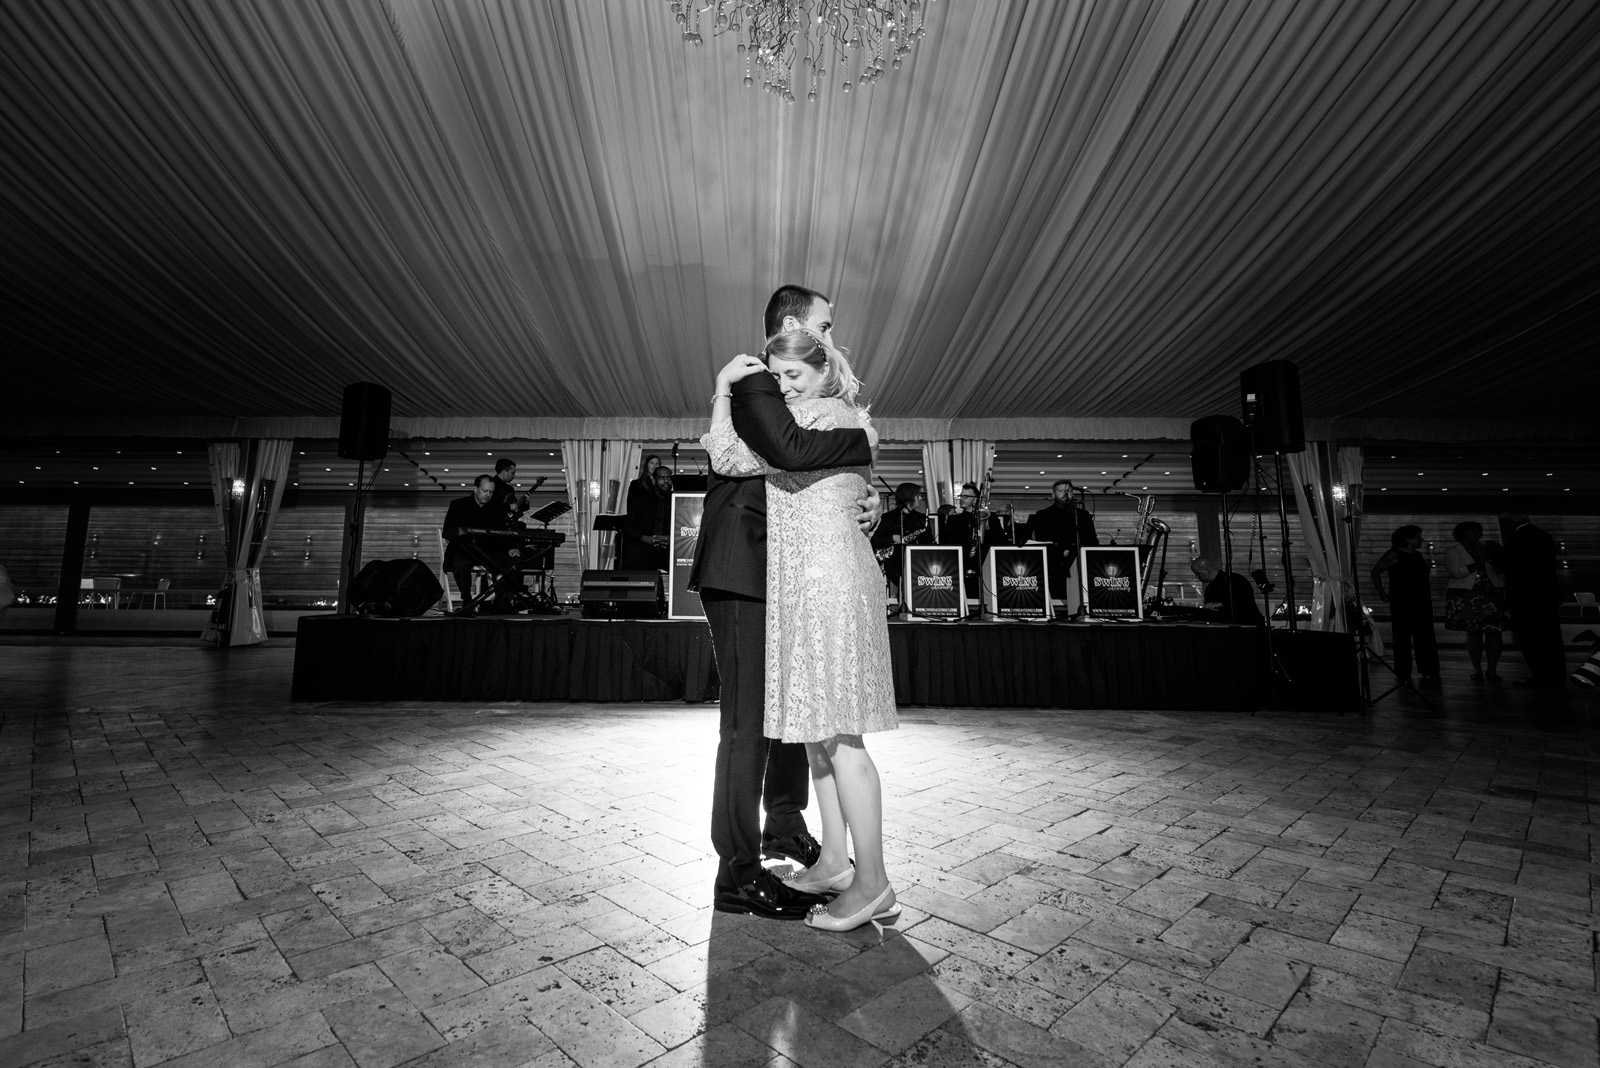 Groom dance with Mother of the Groom during wedding reception at Galleria Marchetti